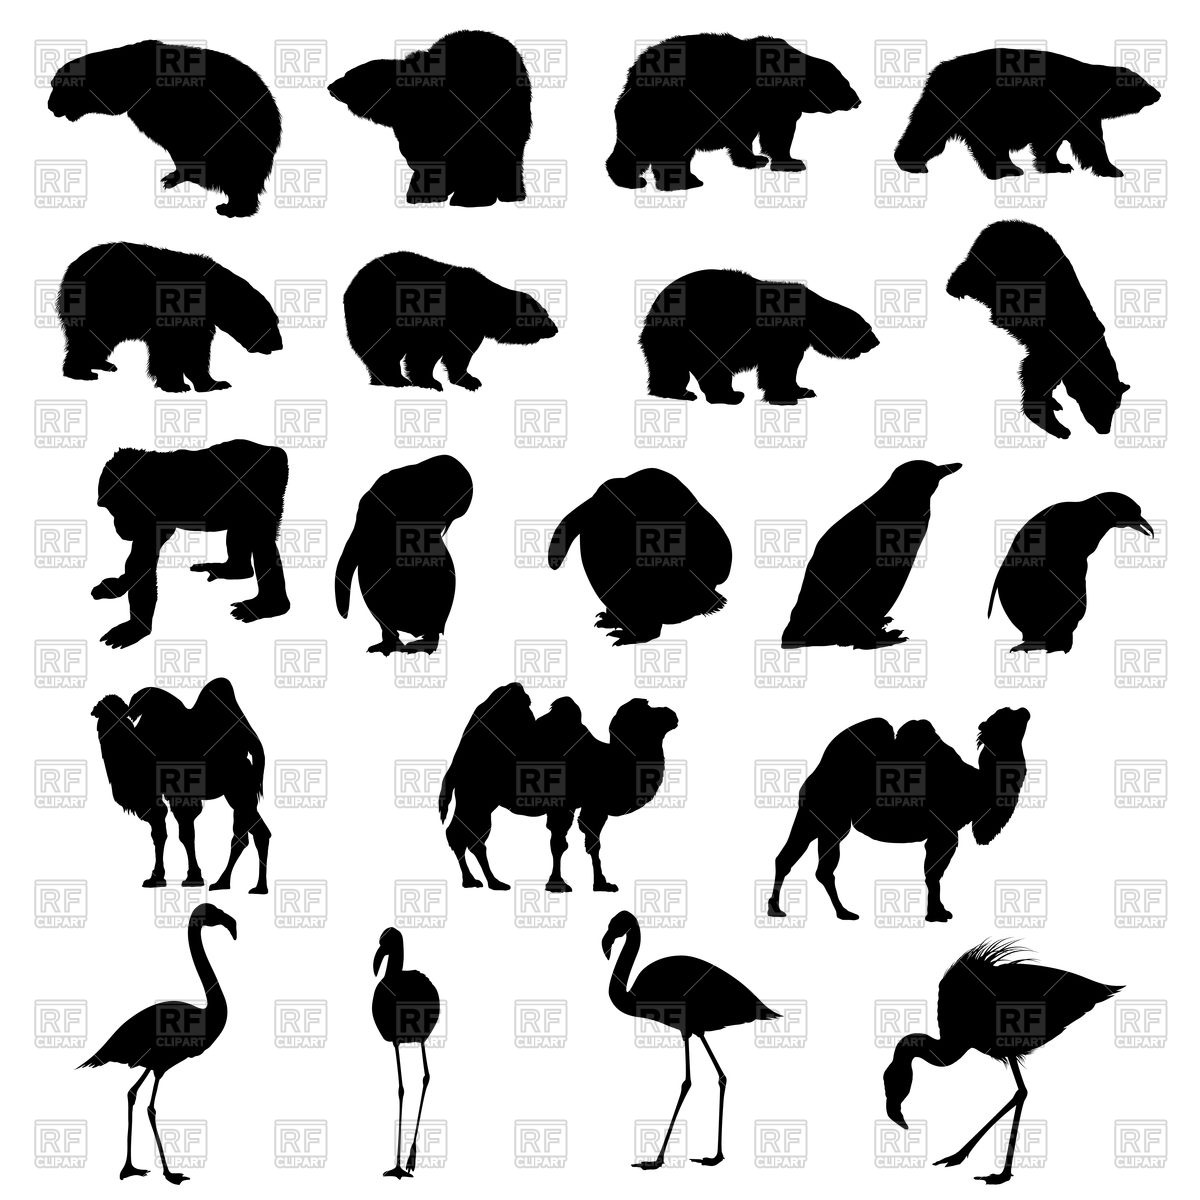 1200x1200 Set Of Bears, Ape, Penguins, Camels And Flamingos Silhouettes